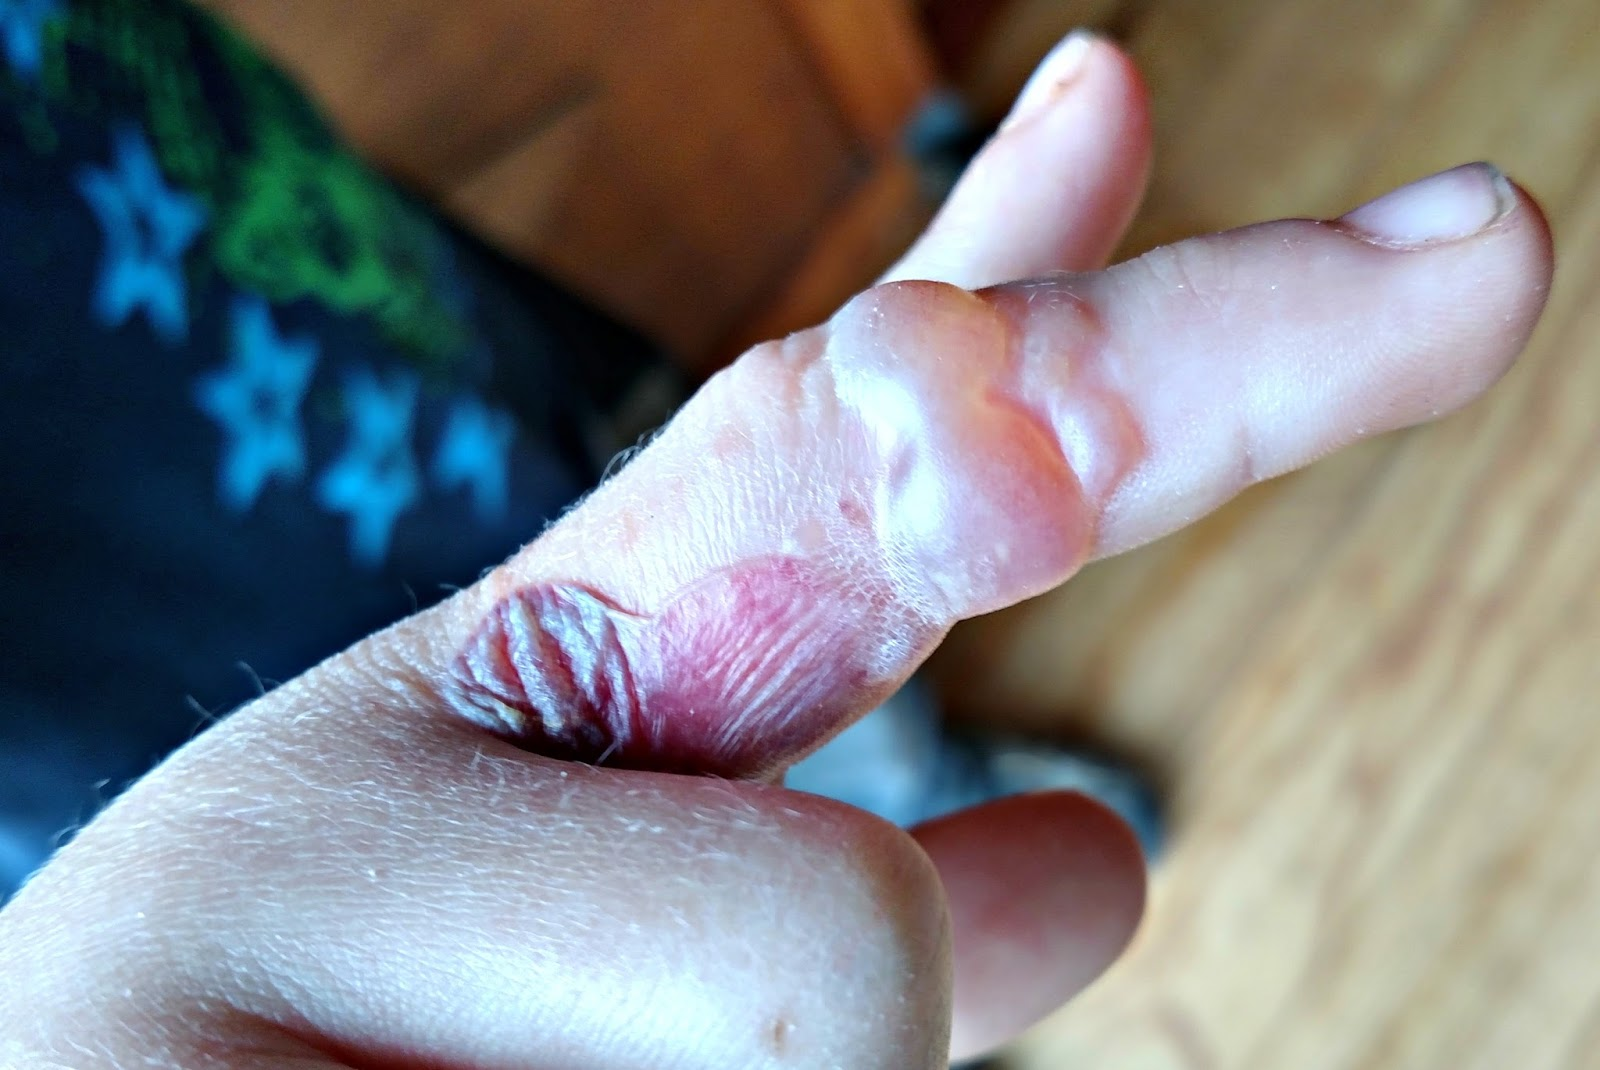 how to bring down swelling from bee sting